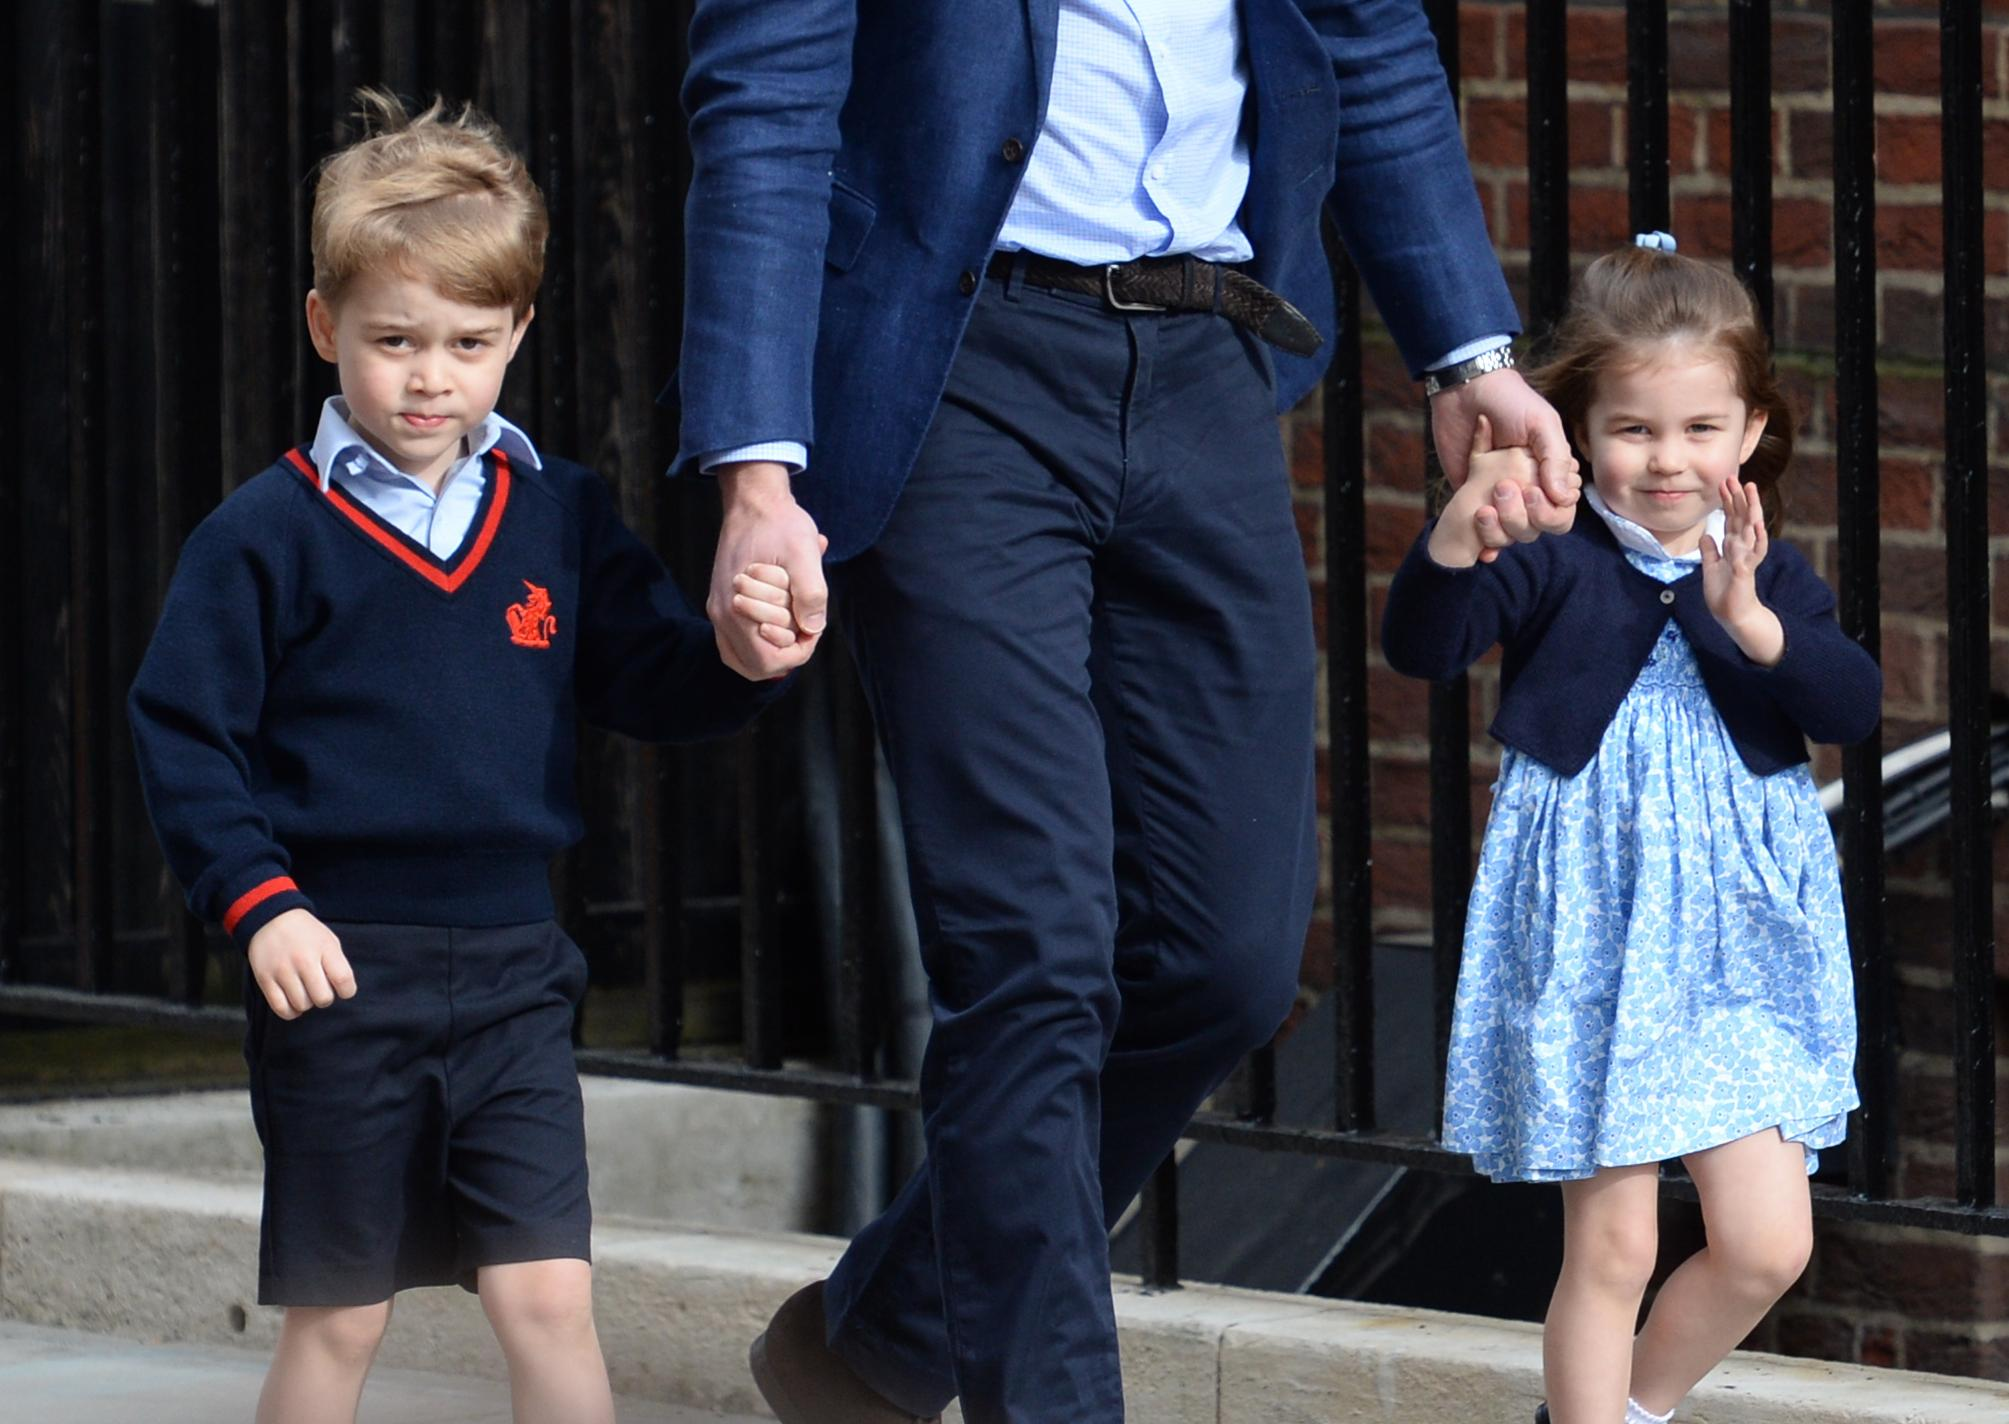 File photo dated 23/04/18 of Prince George and Princess Charlotte arriving at the Lindo Wing at St Mary's Hospital in Paddington, London, following the birth of their younger brother, Prince Louis.